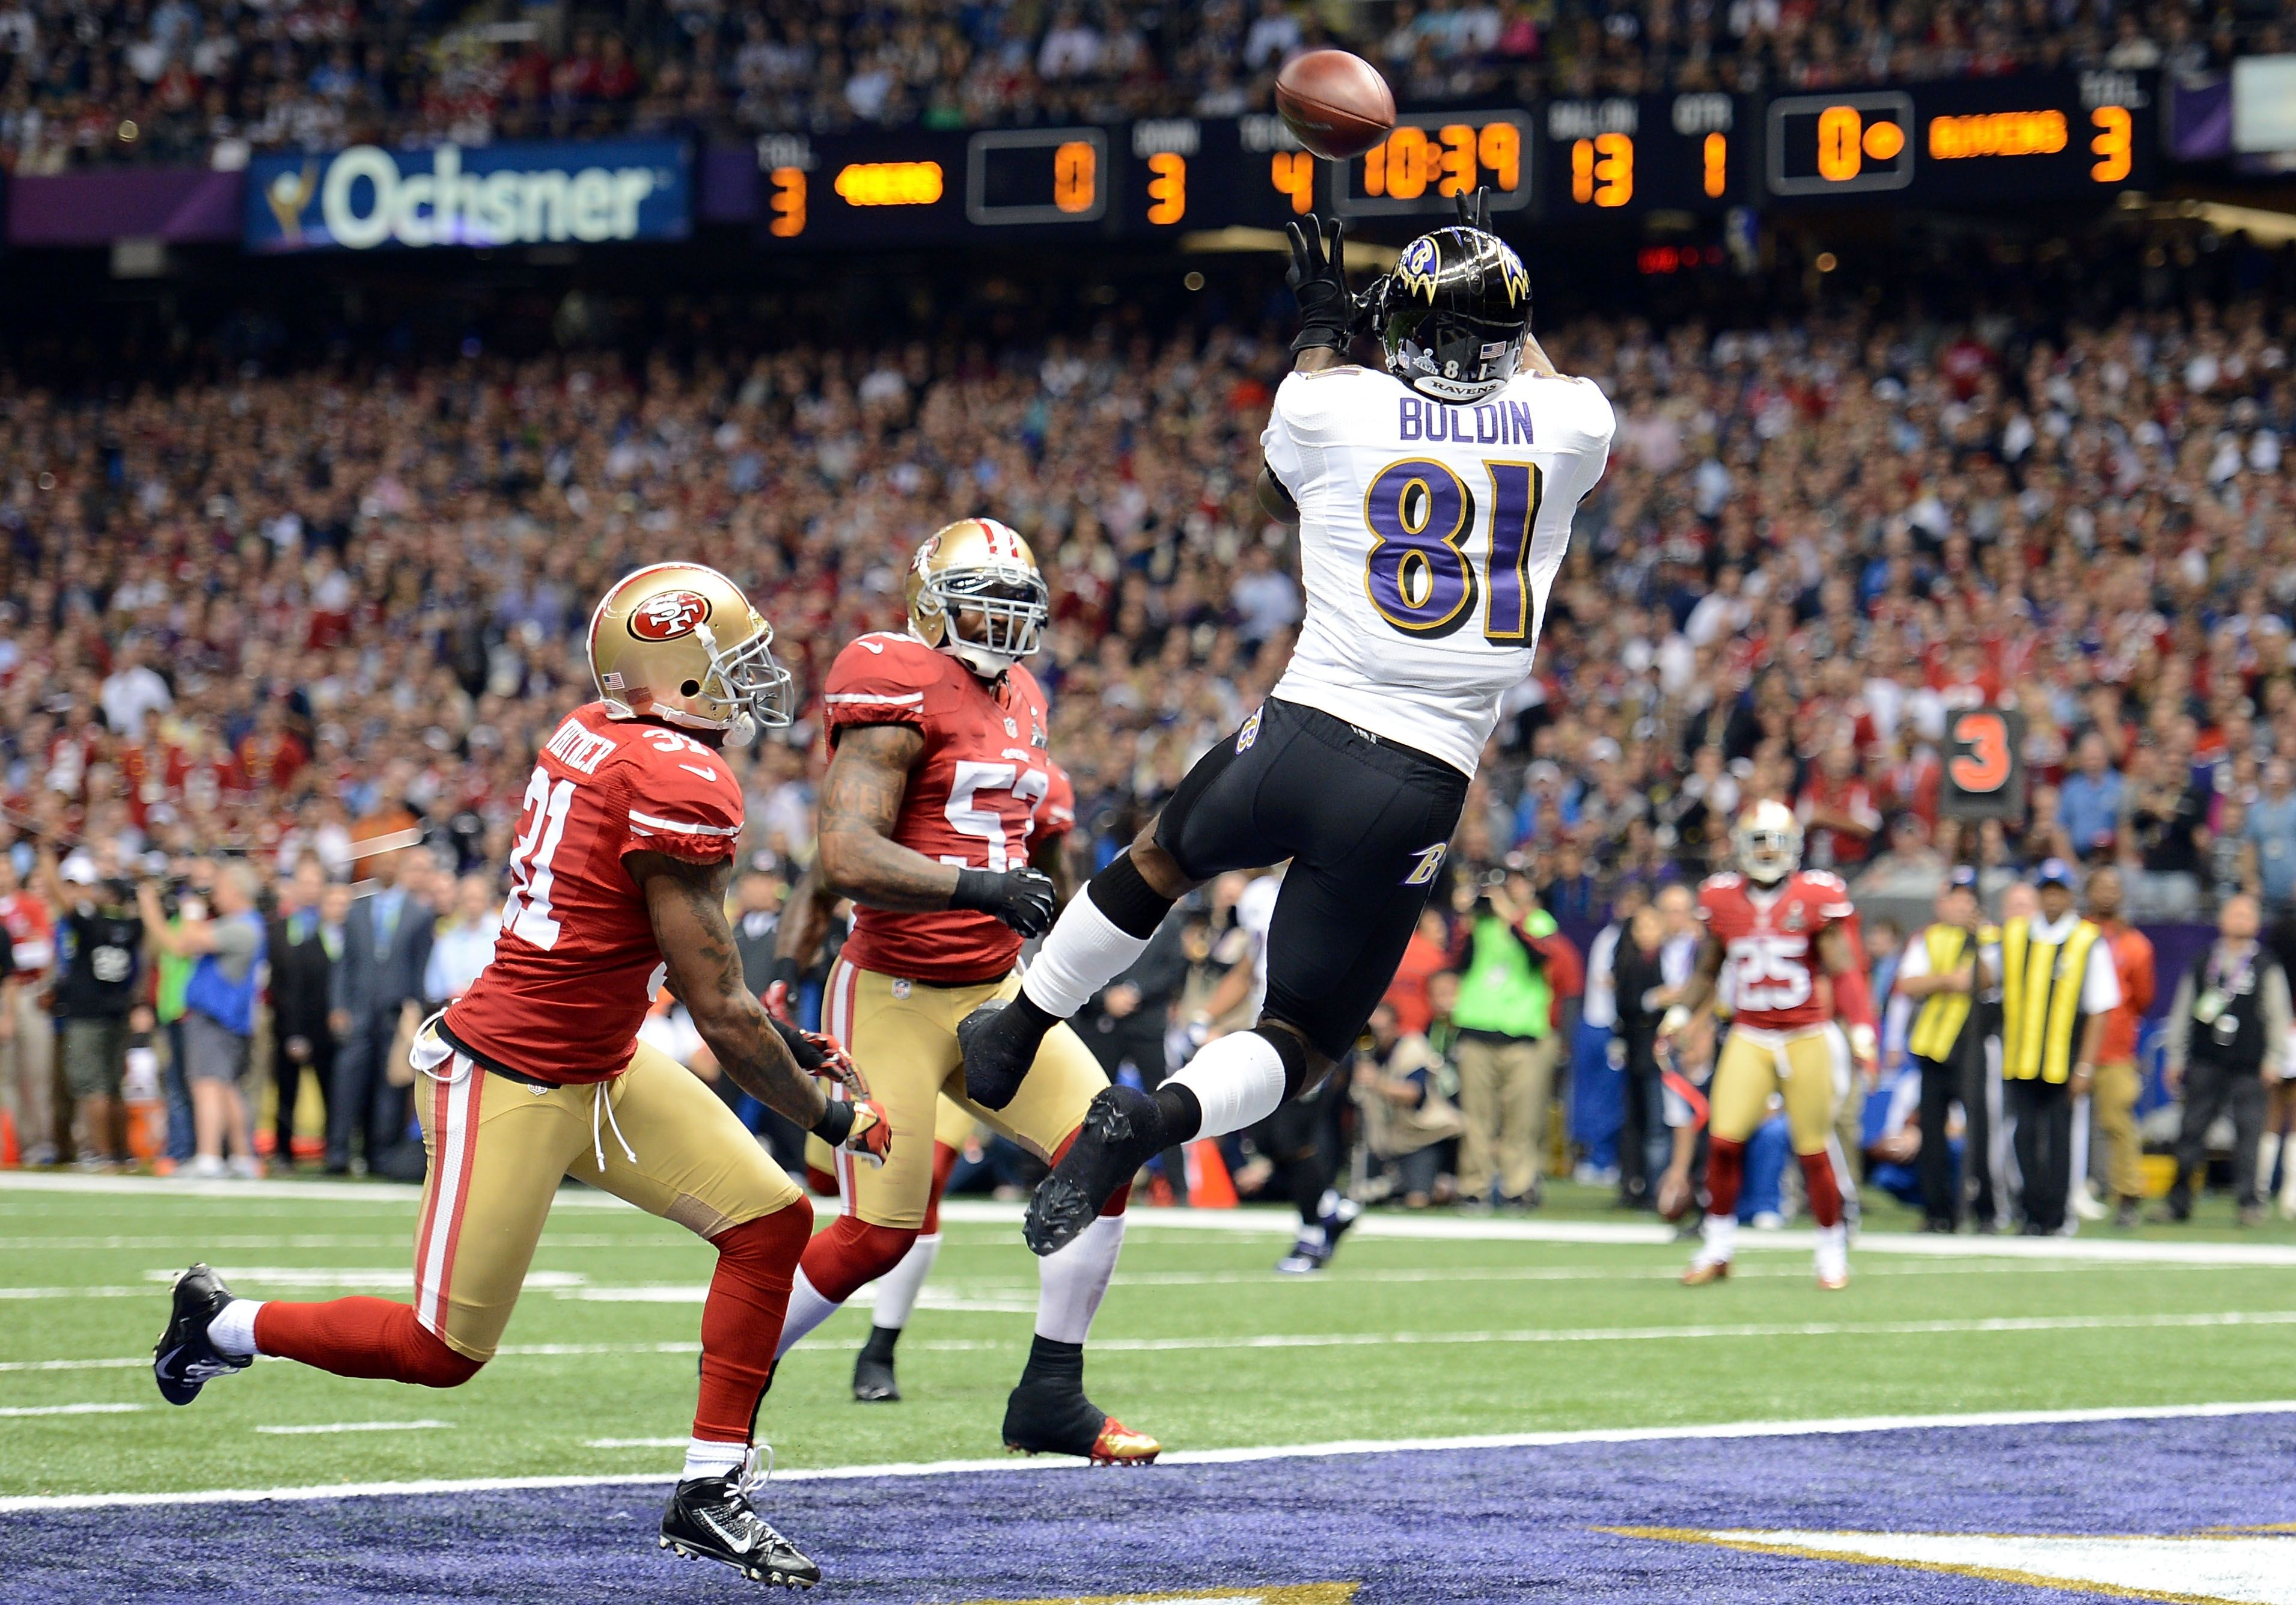 Baltimore Ravens vs. Buffalo Bills: Anquan Boldin is legend of the game